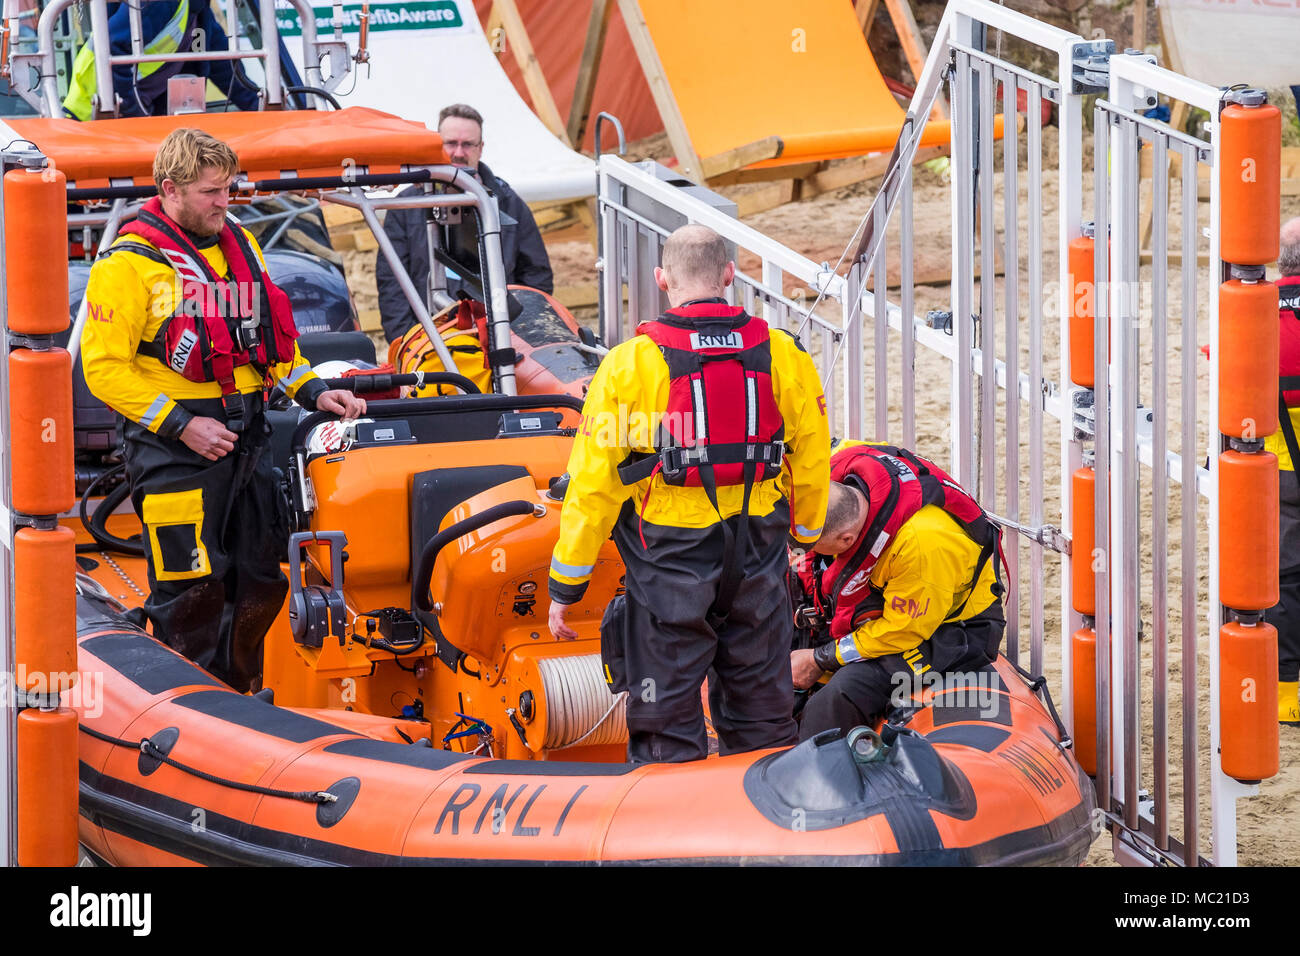 Volunteers of the Newquay RNLI crew preparing their rescue craft for participation in a GMICE (Good Medicine in Challenging Environments) major incide - Stock Image